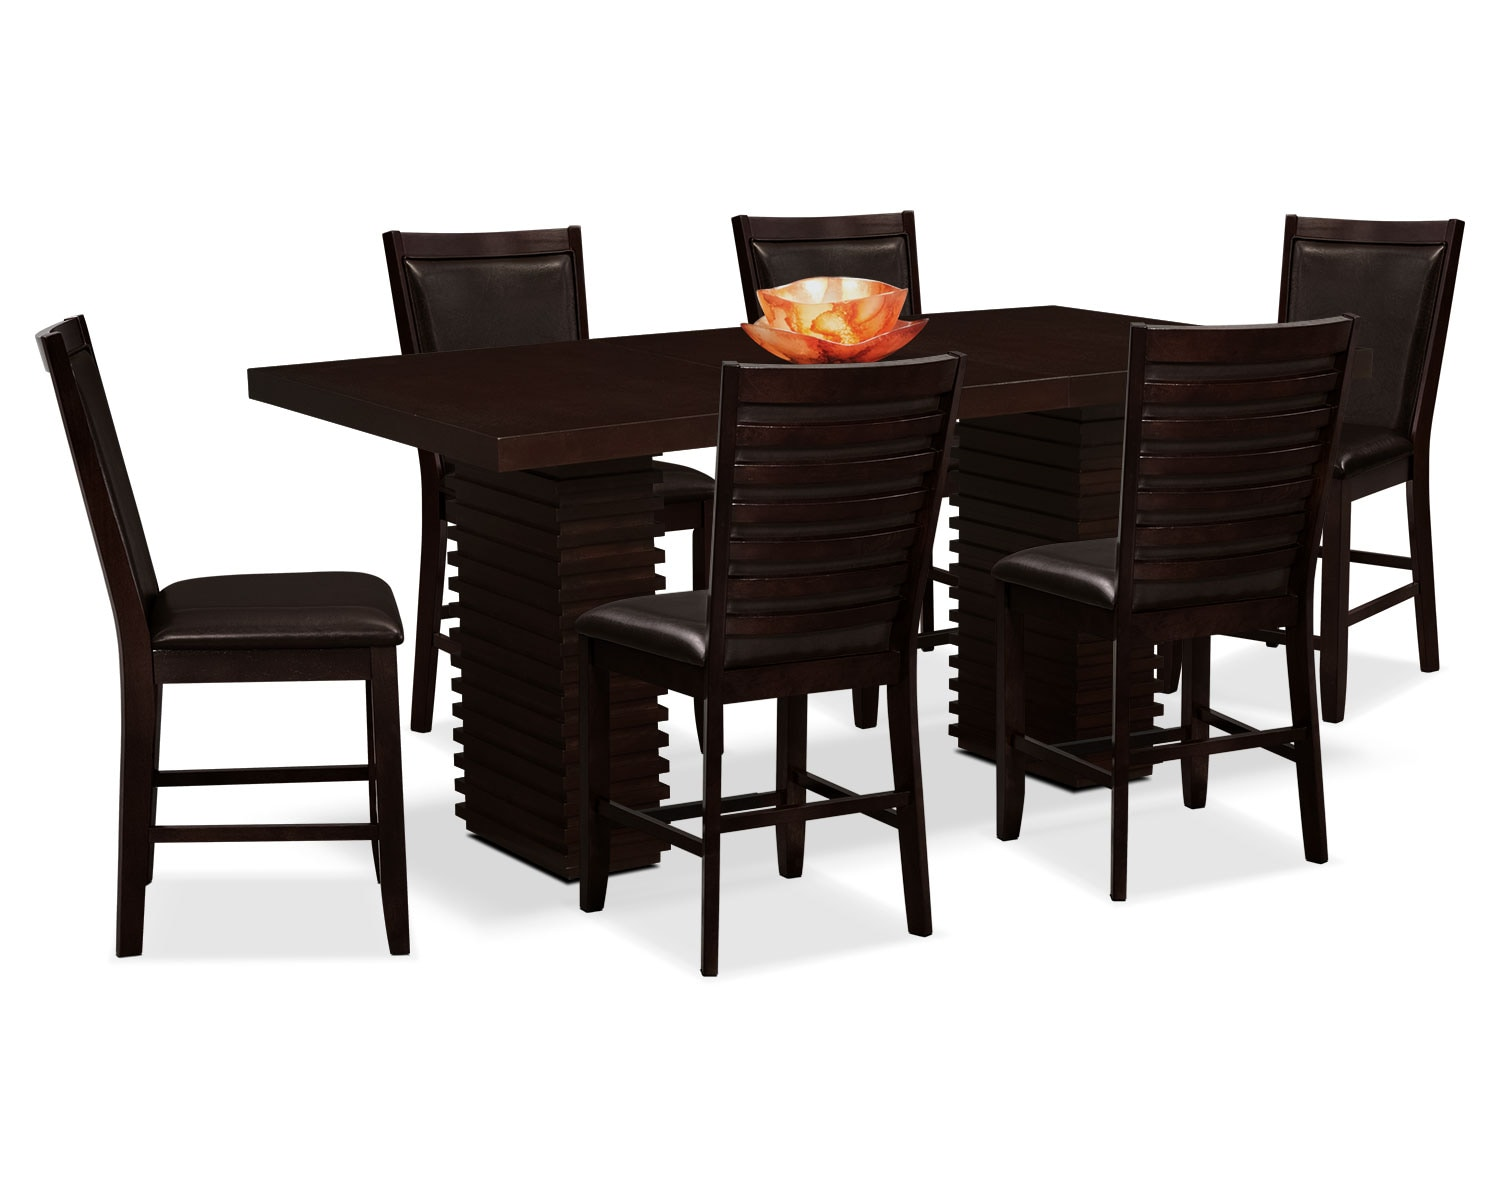 The Paragon Counter-Height Collection